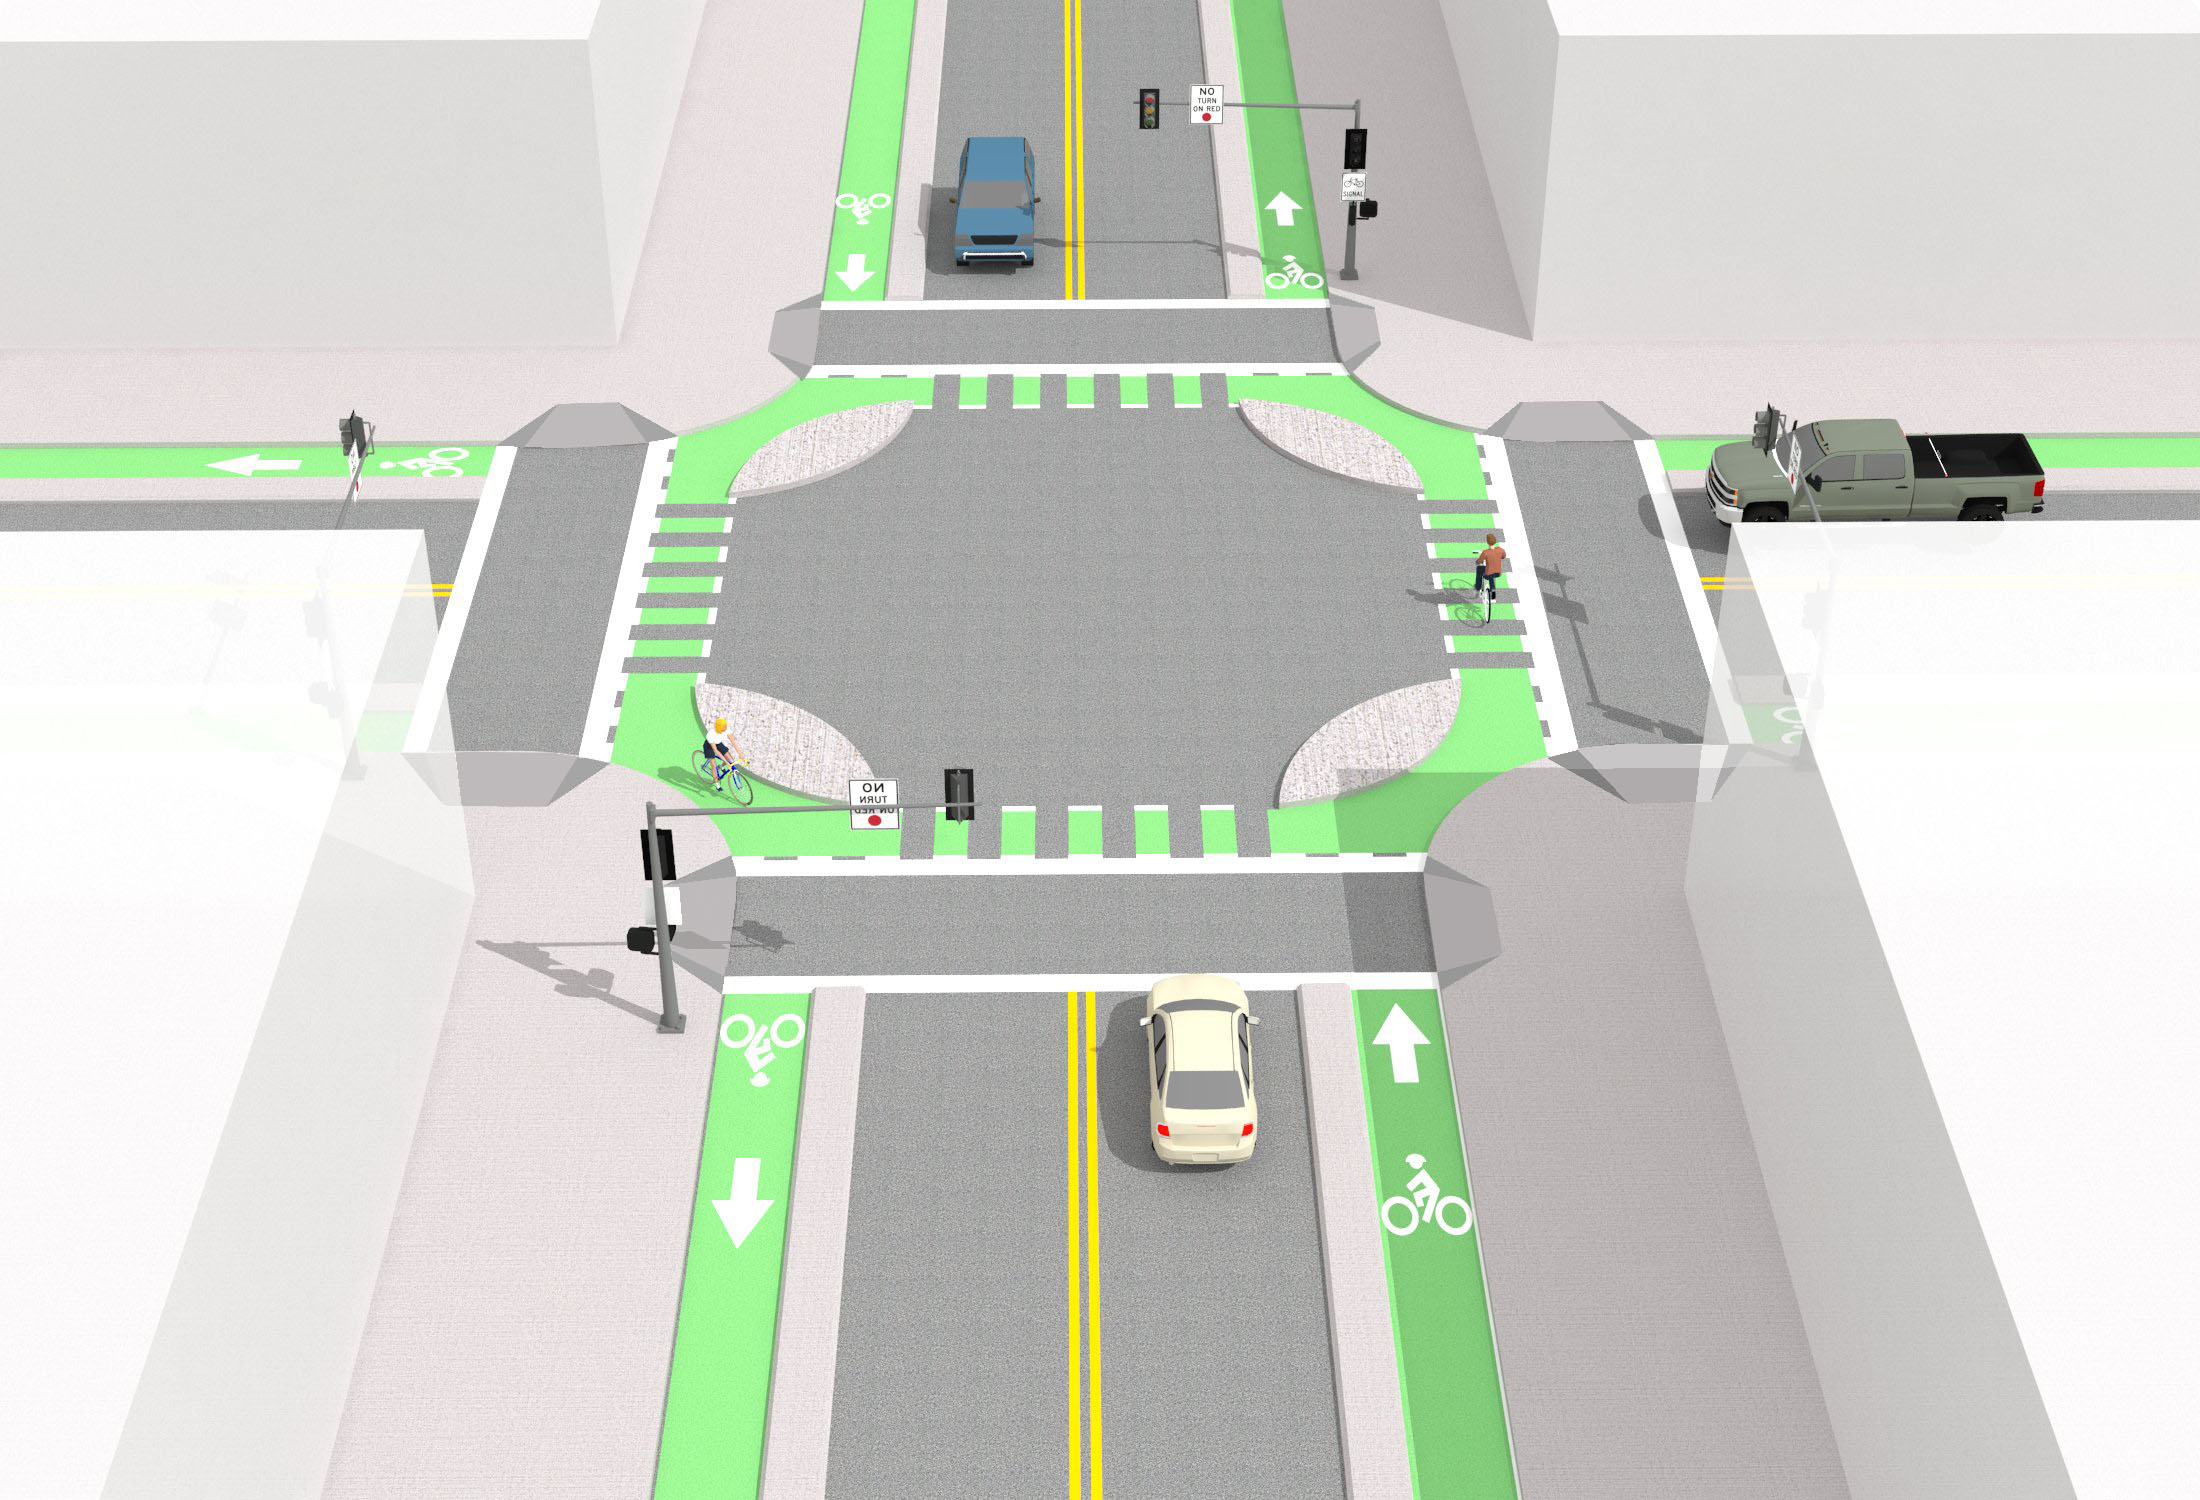 Example of a Protected Intersection